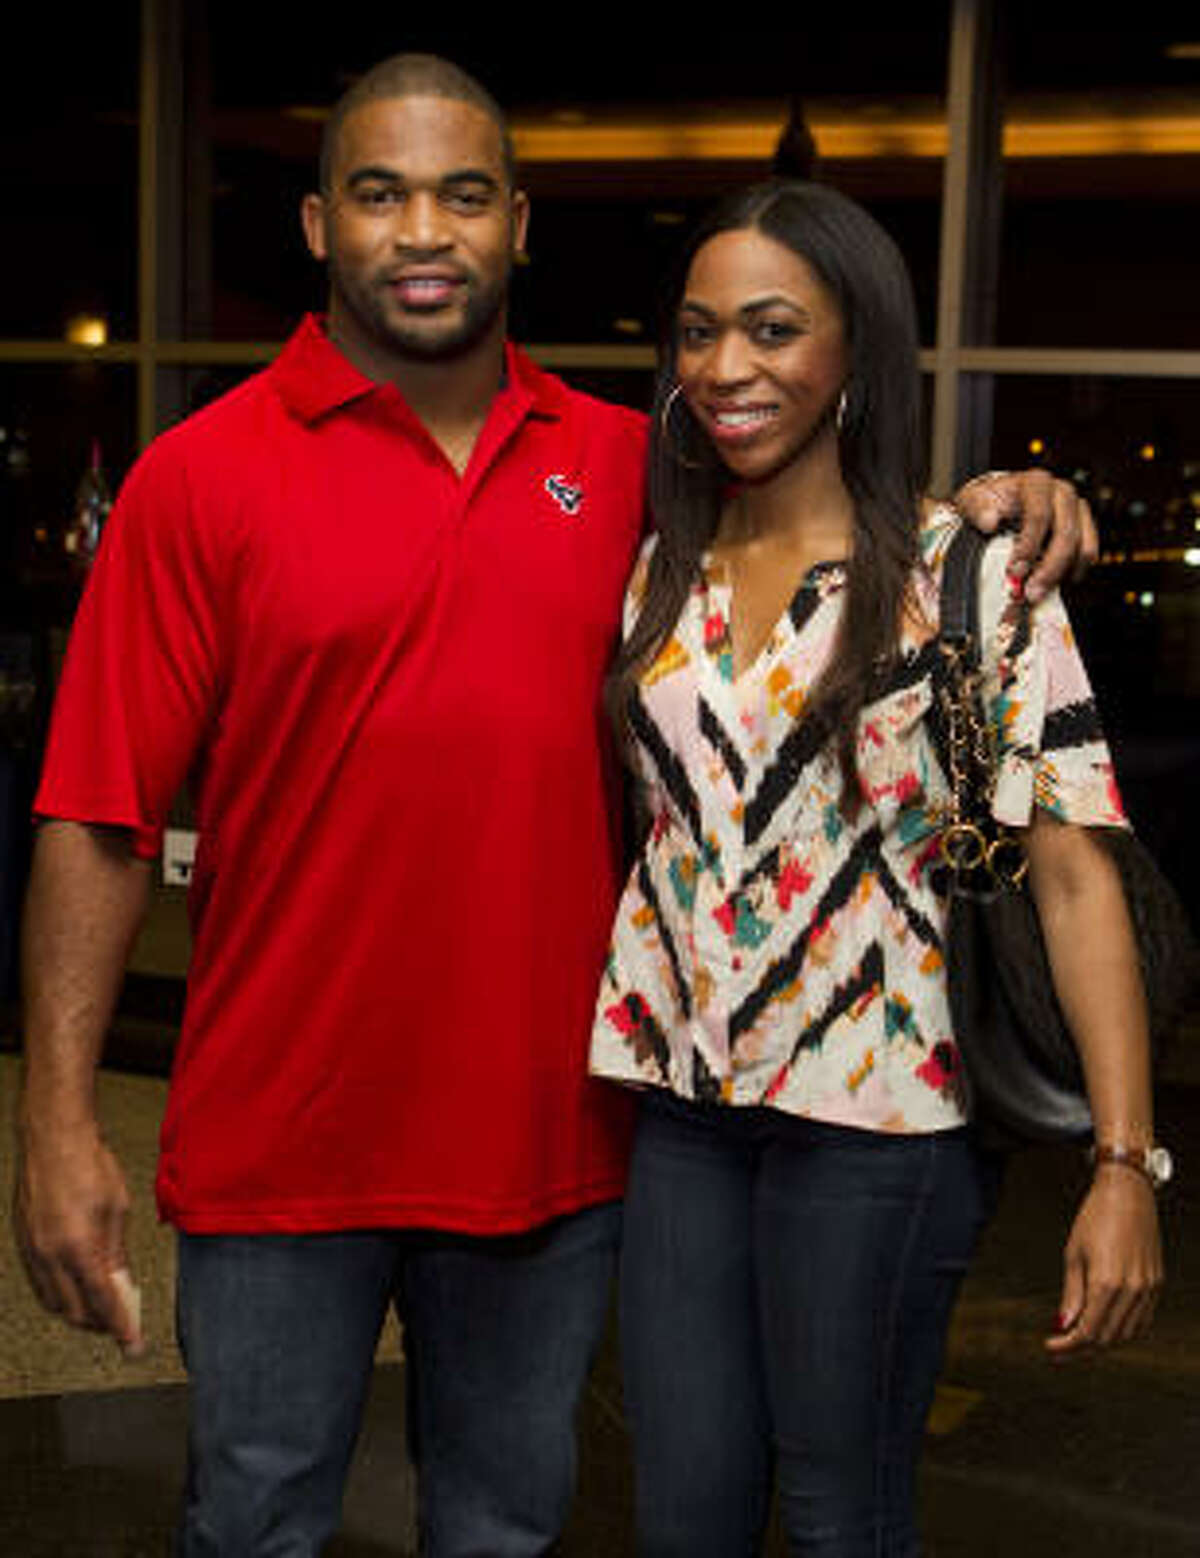 Houston Texans linebacker Darryl Sharpton and his wife Brittany.